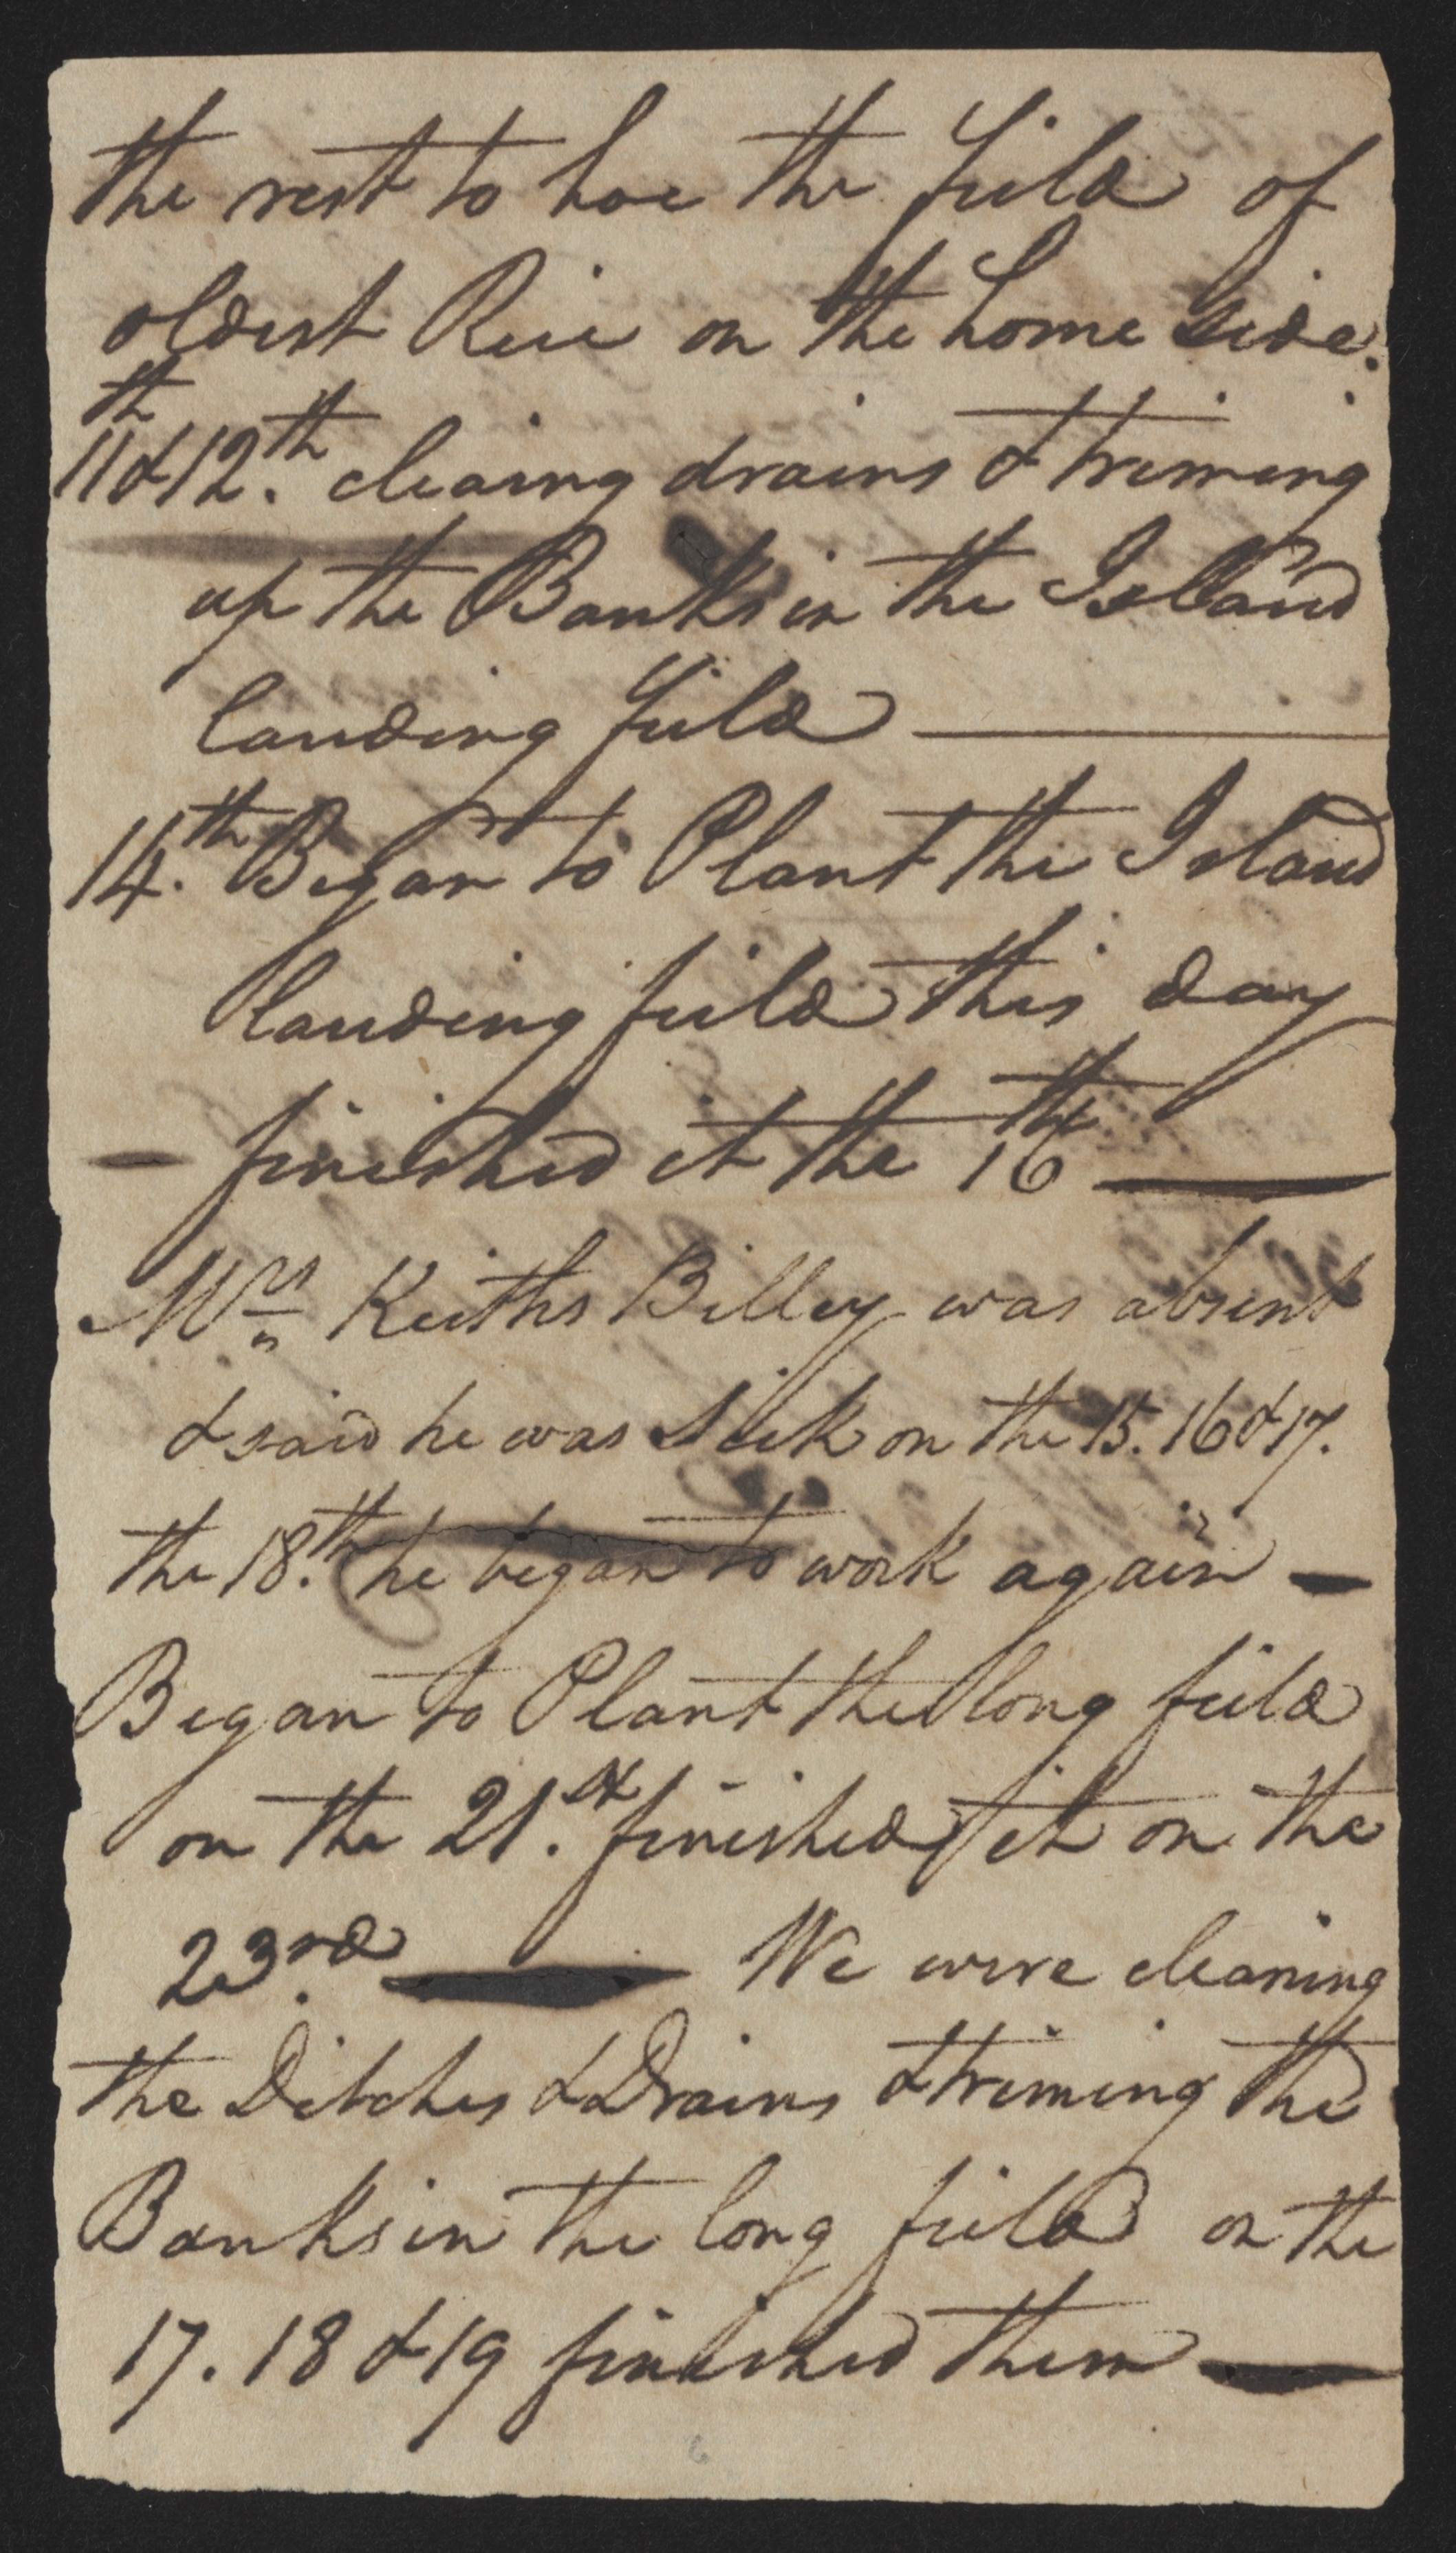 Sandy Island Plantation Journal, Volume 1, 1792, Page 10